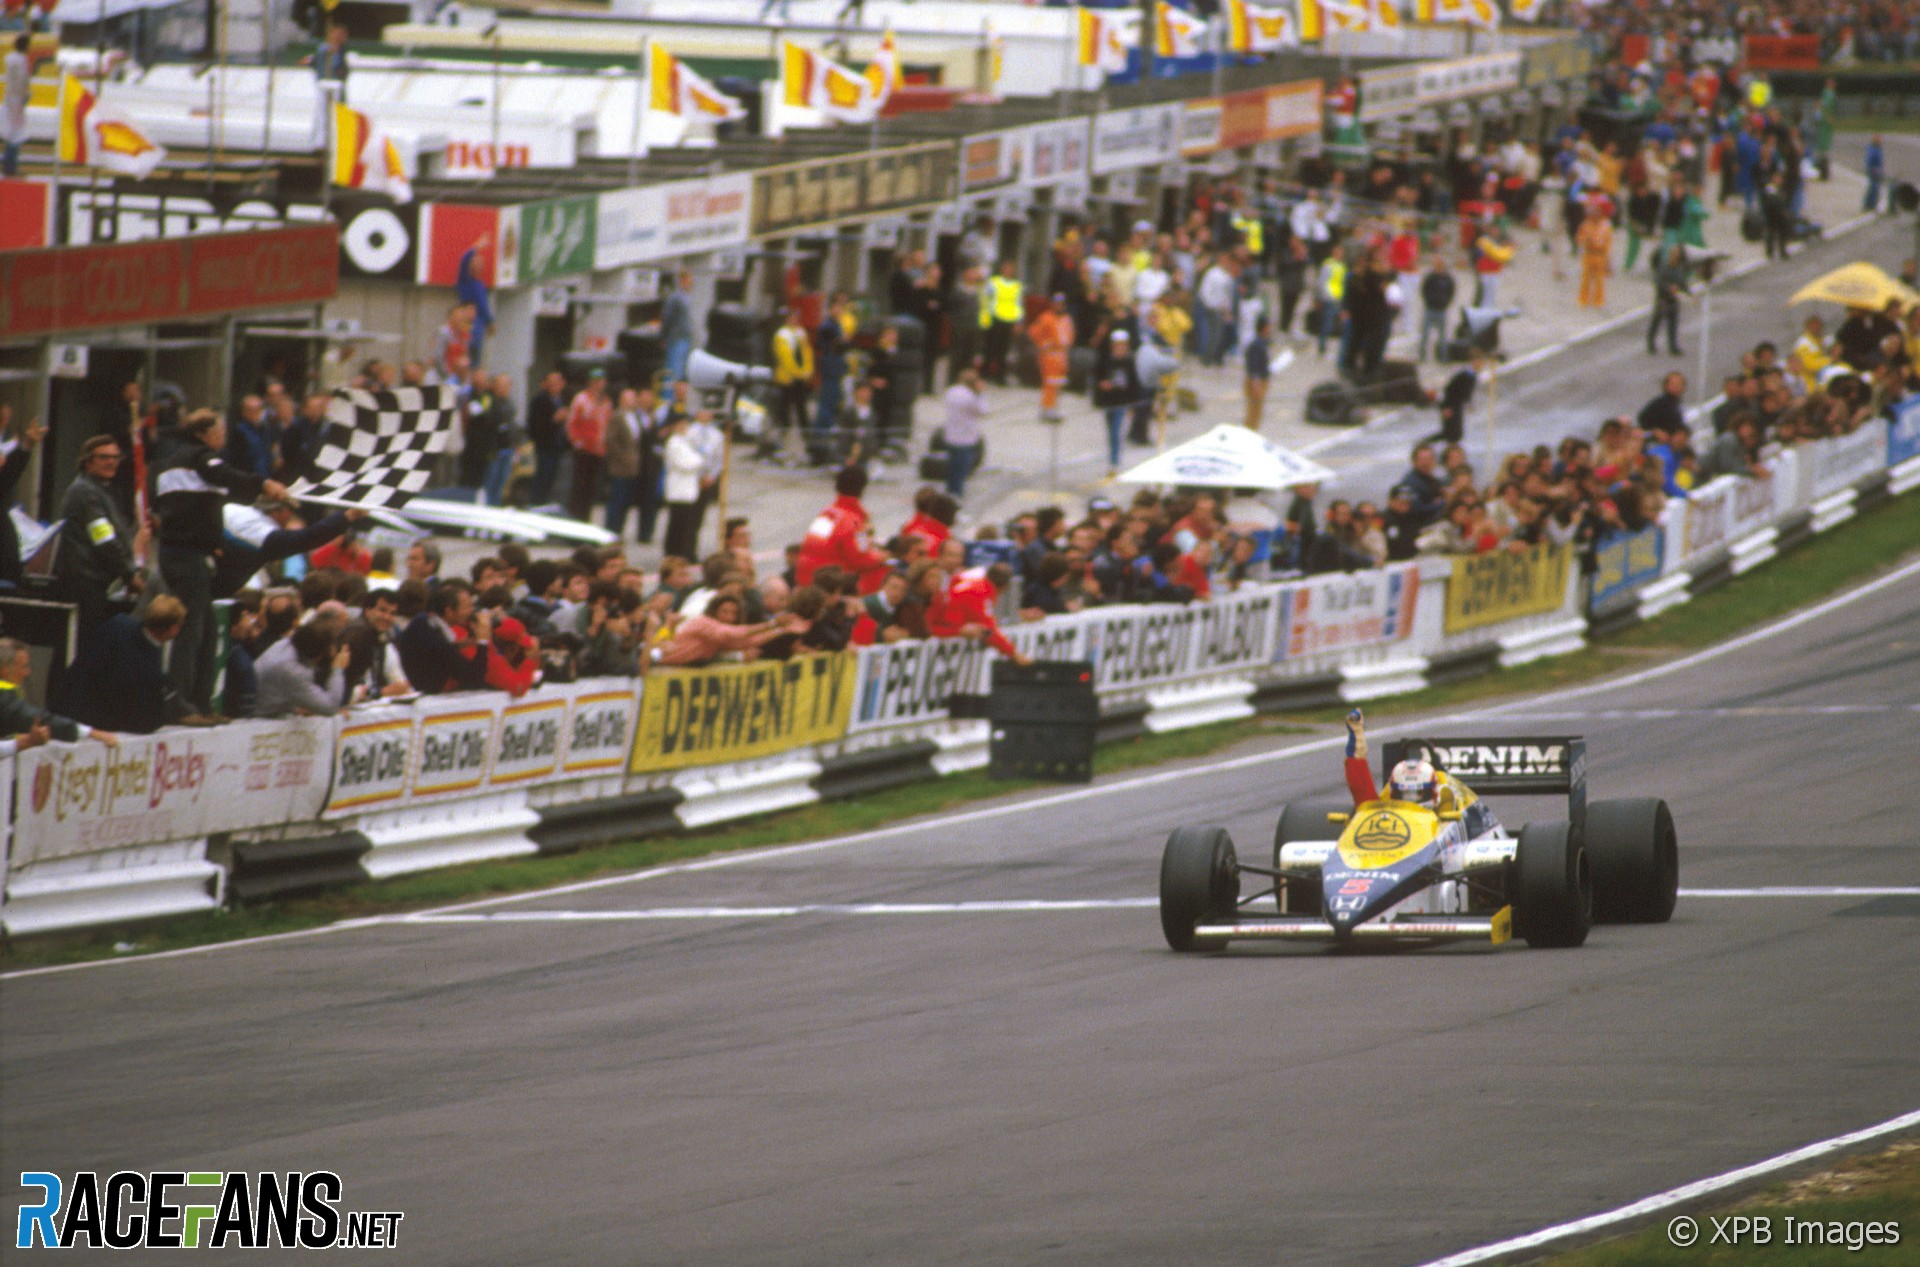 Nigel Mansell, Williams, Brands Hatch, 1985